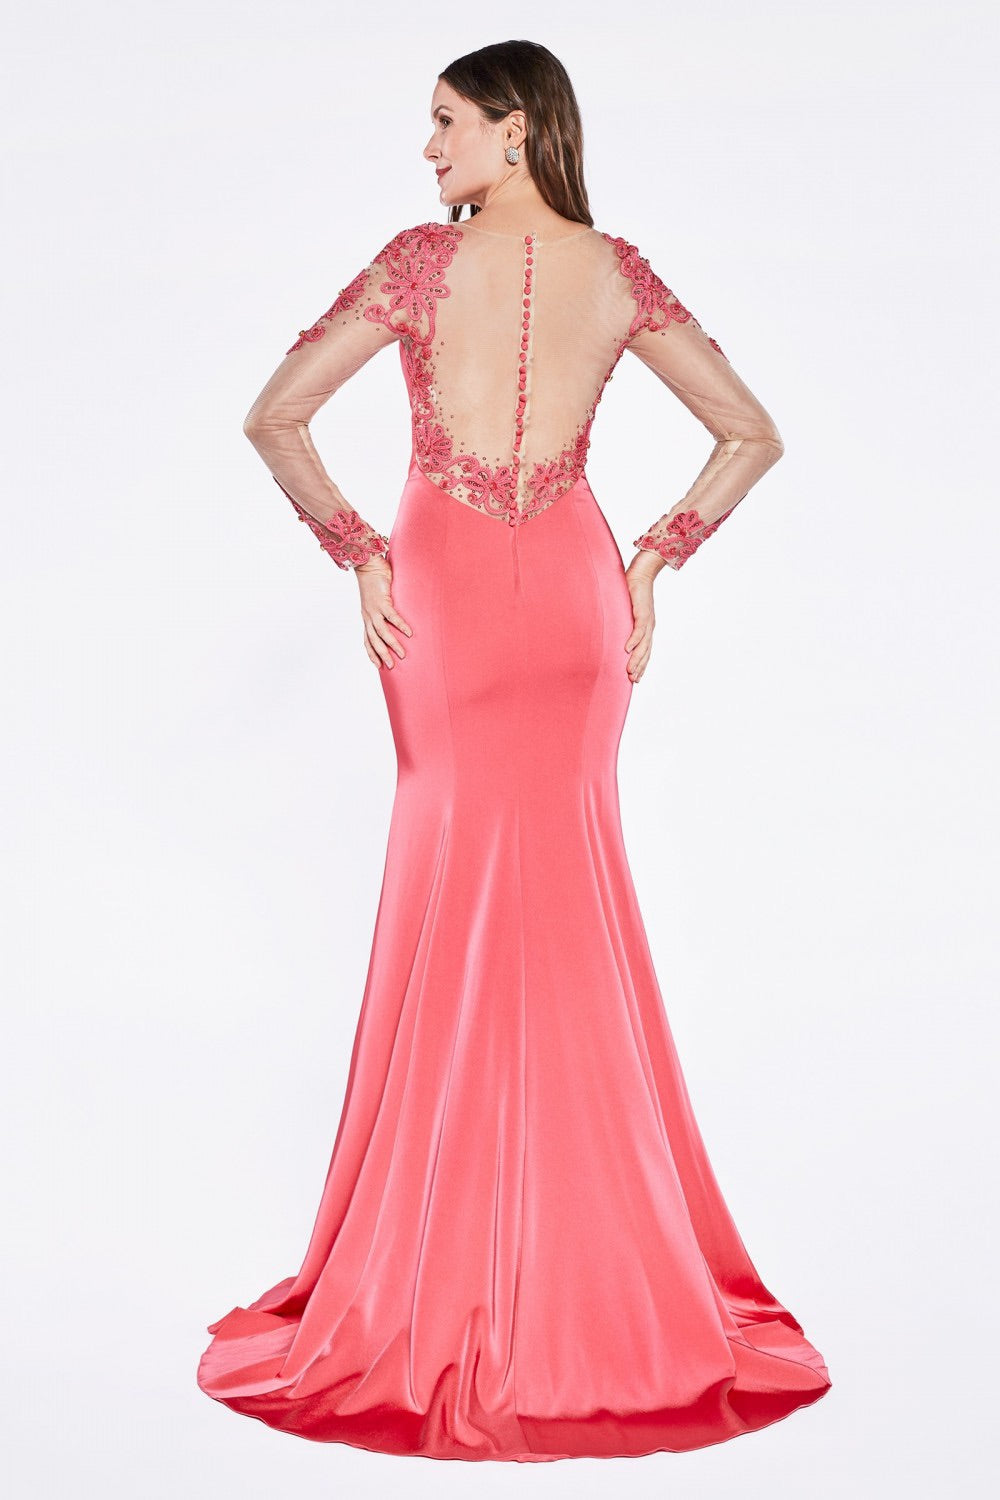 Cinderella Divine KD038 Evening Dress - CYC Boutique